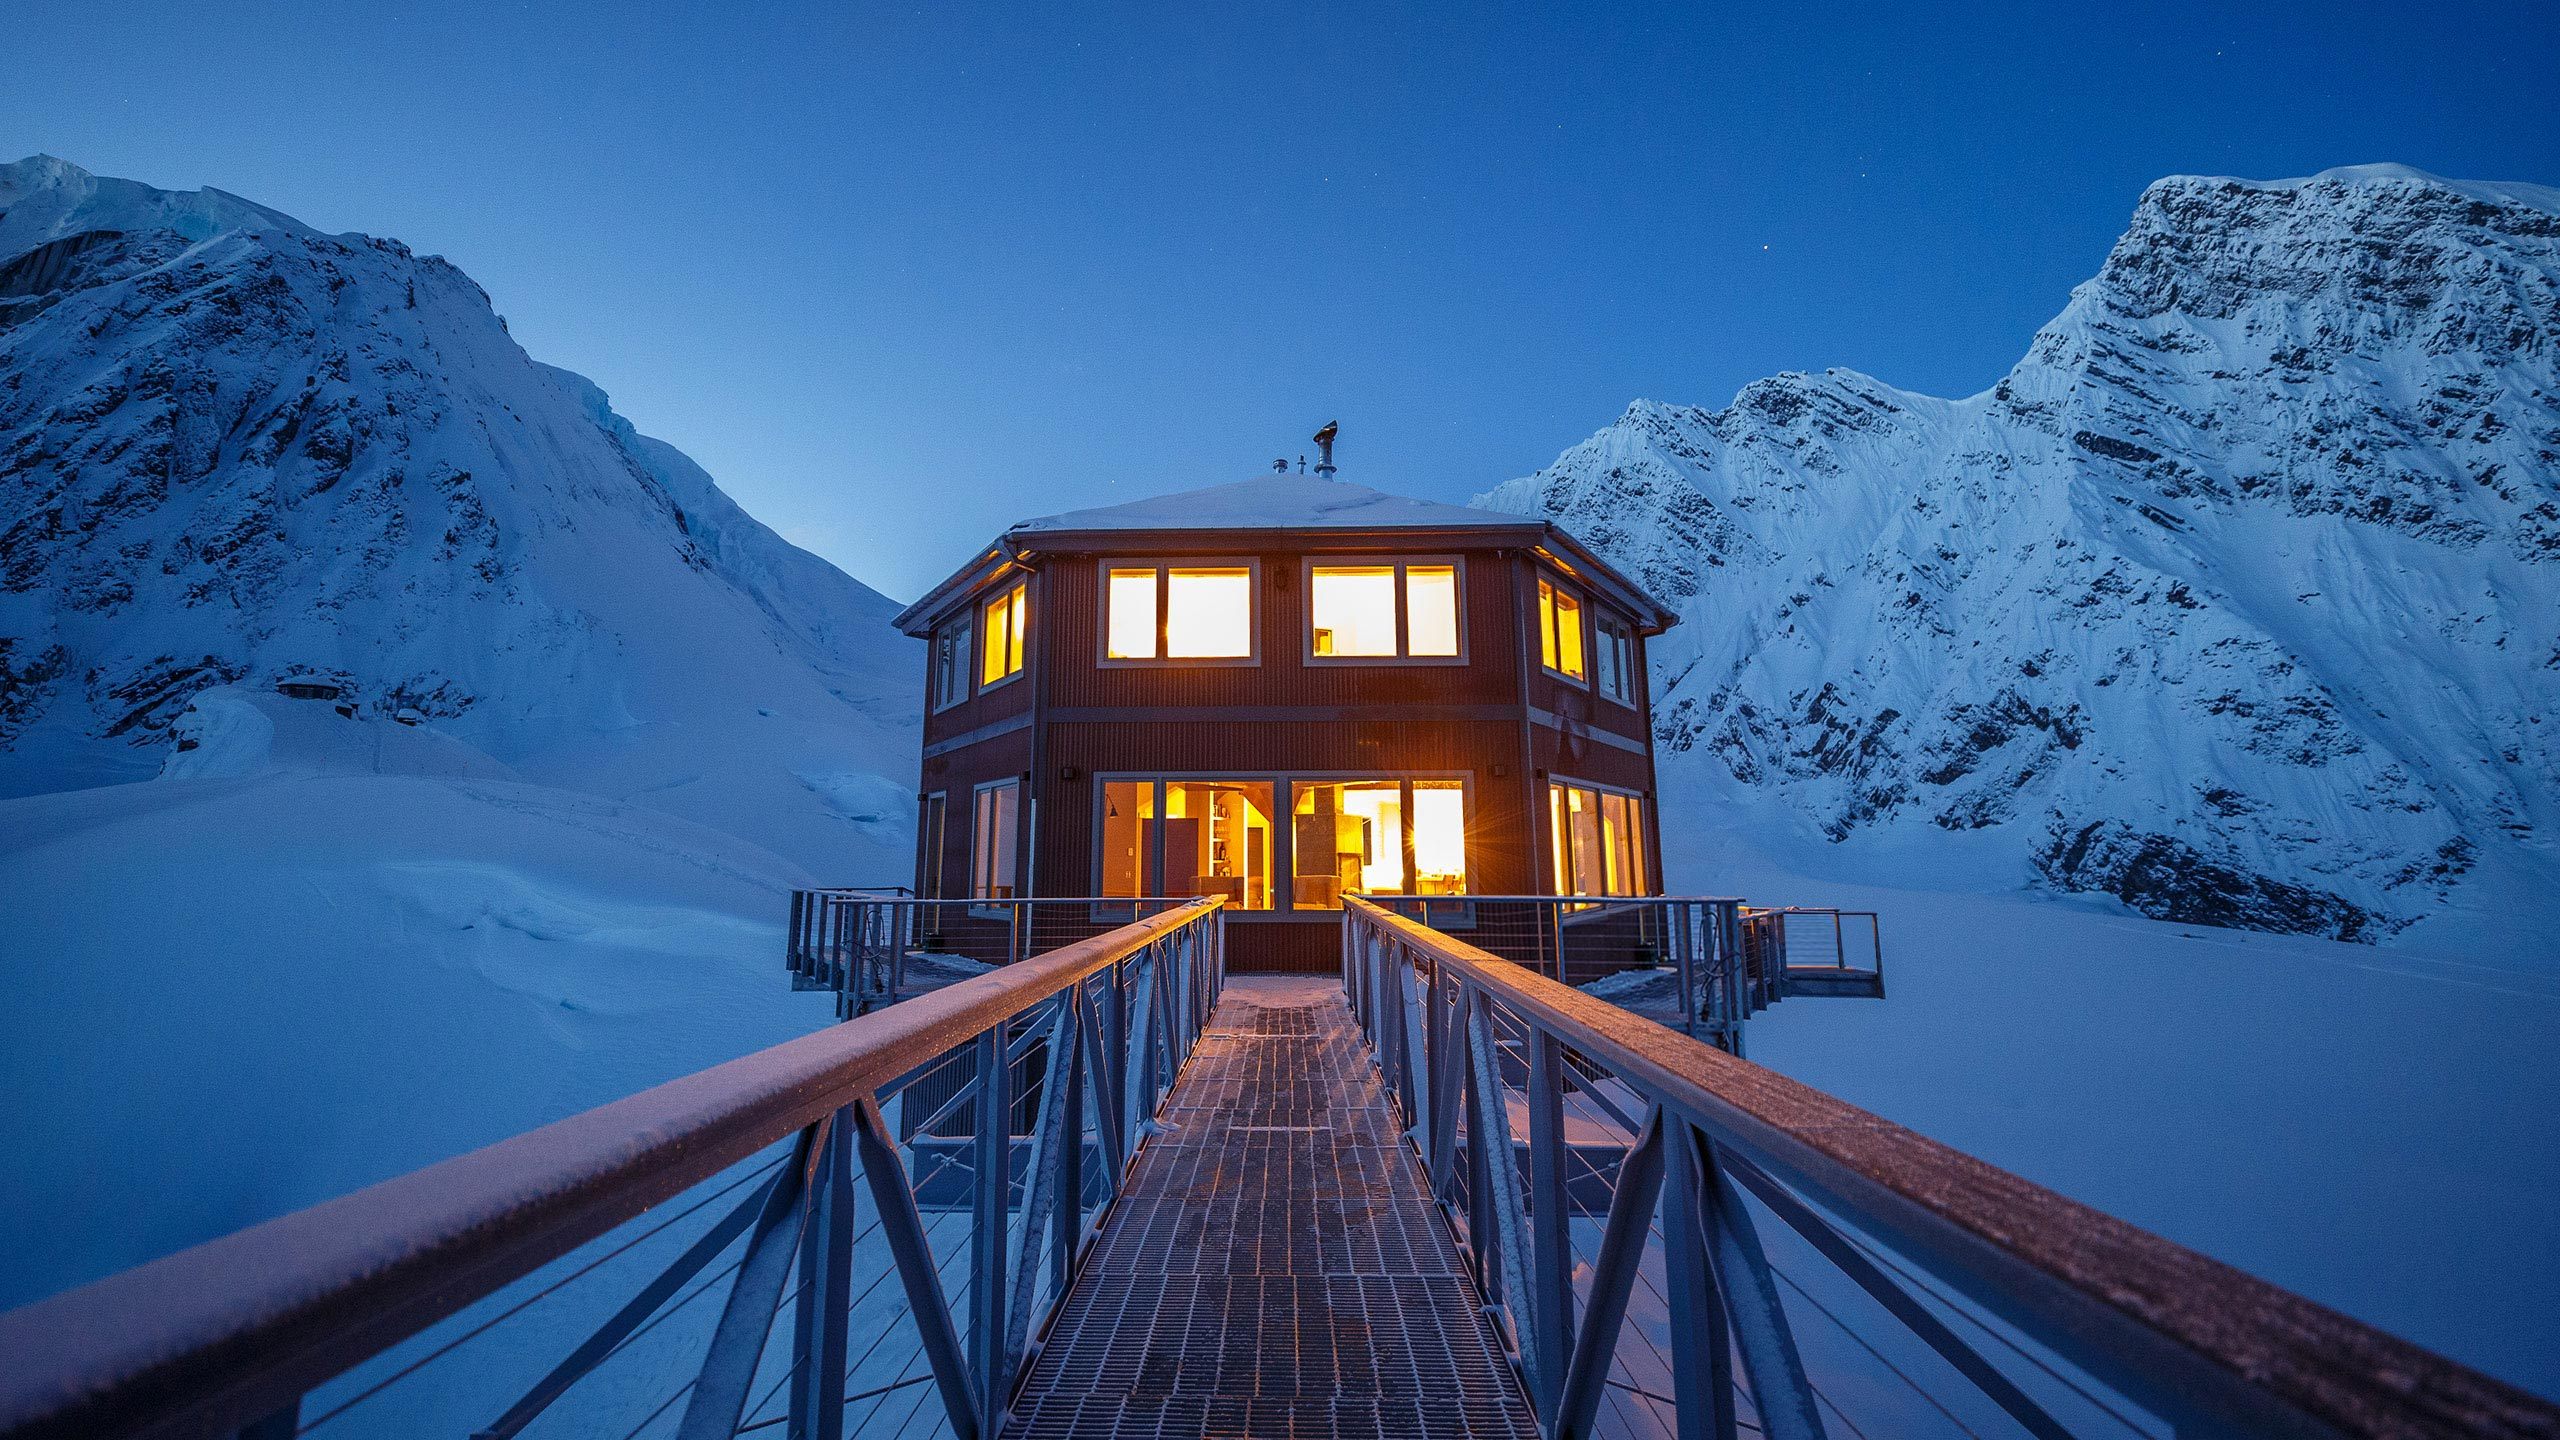 The luxury chalet comes with a dedicated staff and is only accessible via helicopter.